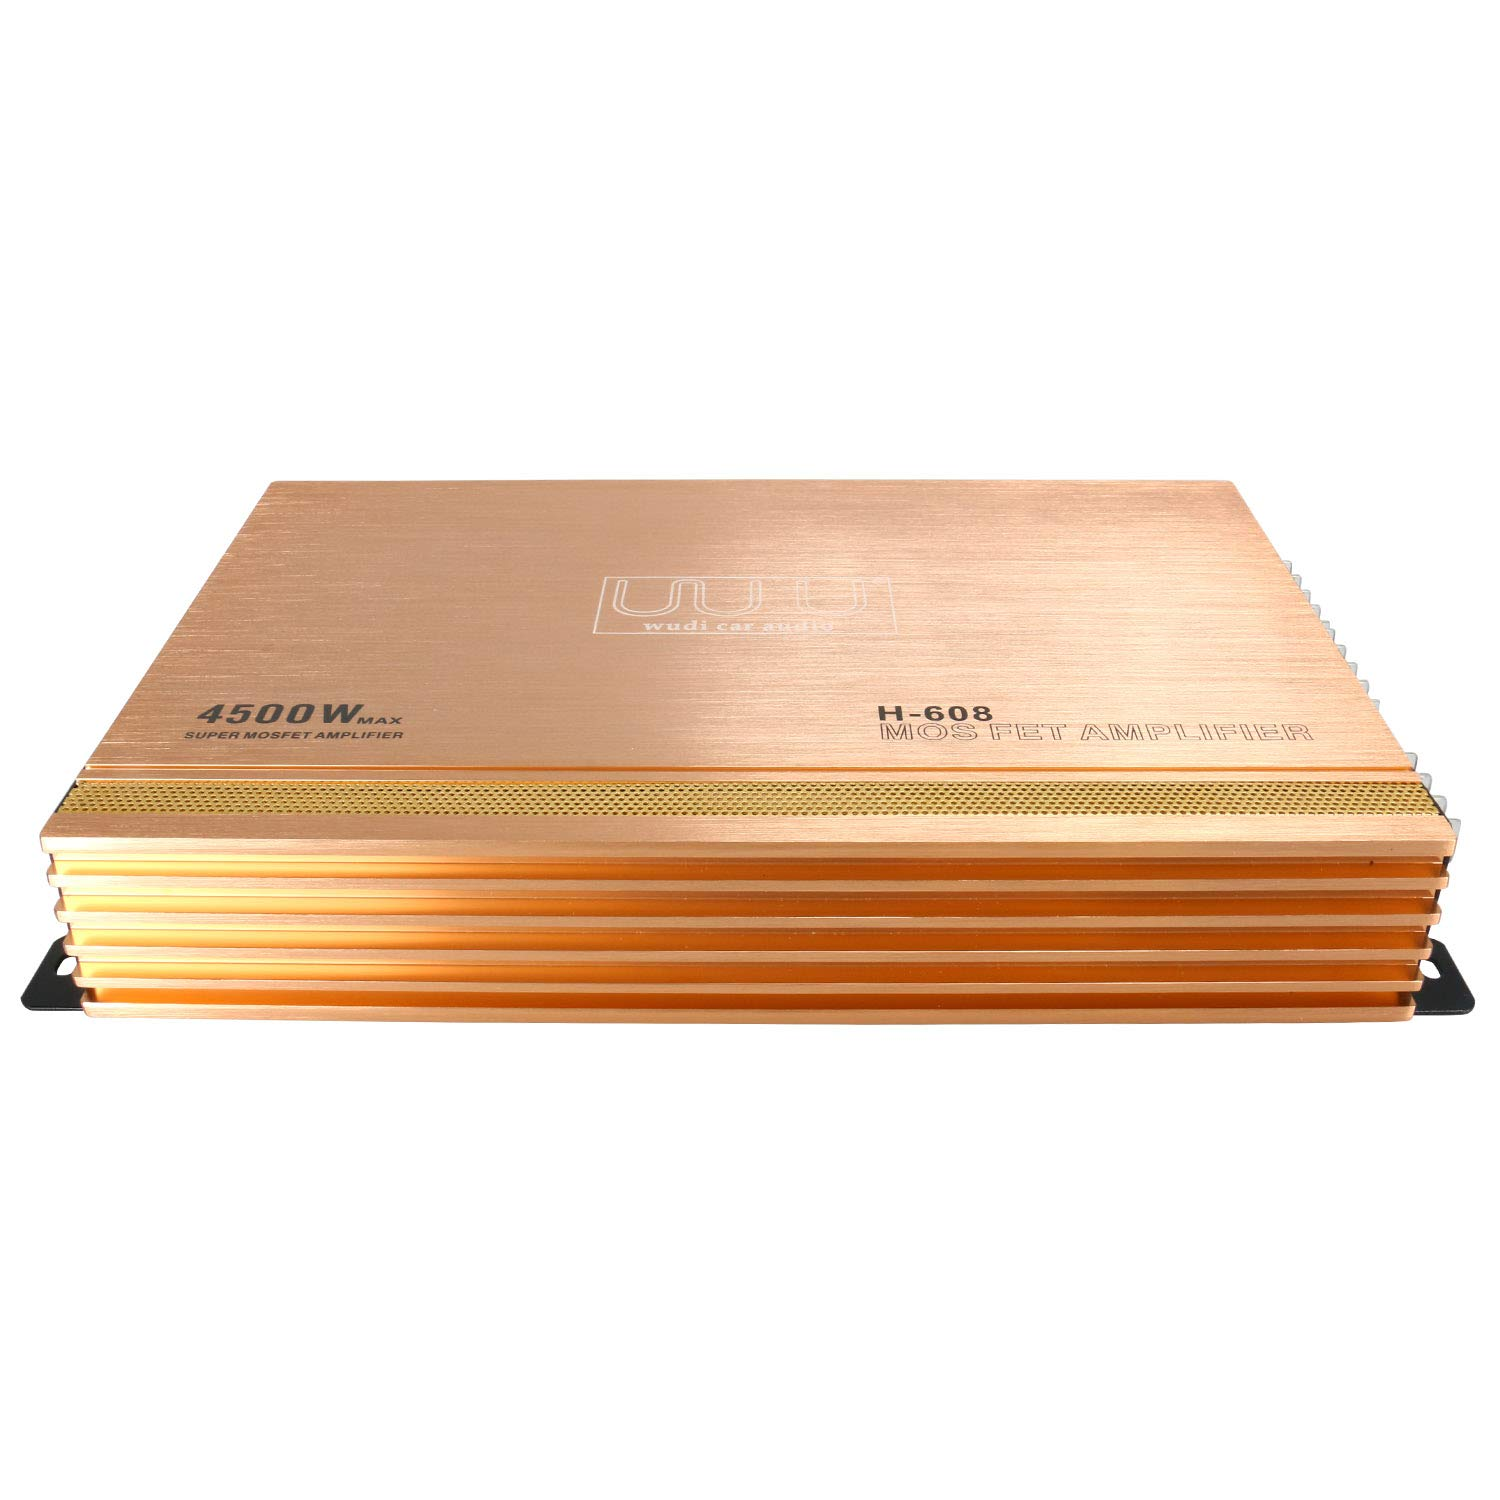 4500W Car Audio Power Stereo Amplifier Amp 4 Channel Super Bass Sub woofer Music 12V Yae First Trading Co Itd